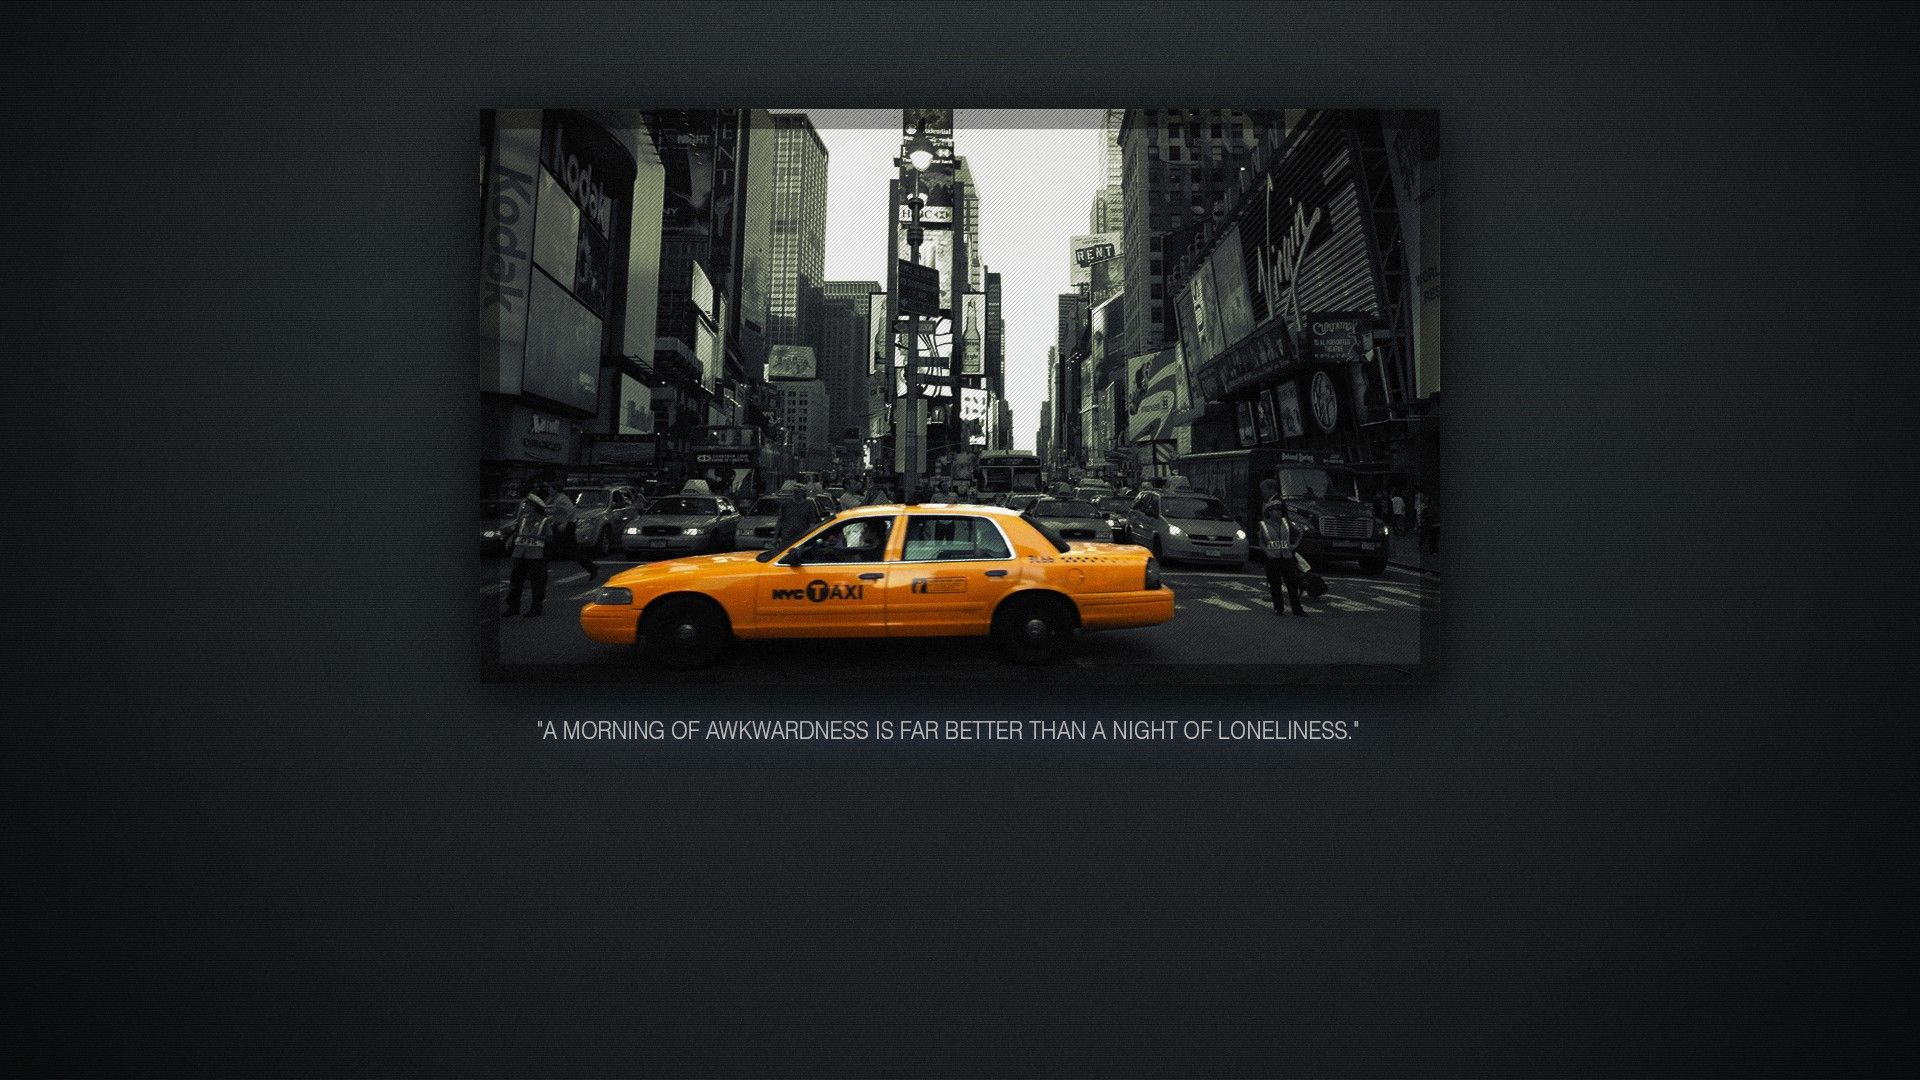 Yellow Quotes New York City Taxi Cab Noise Wallpaper Taxi Cab Taxi New York City